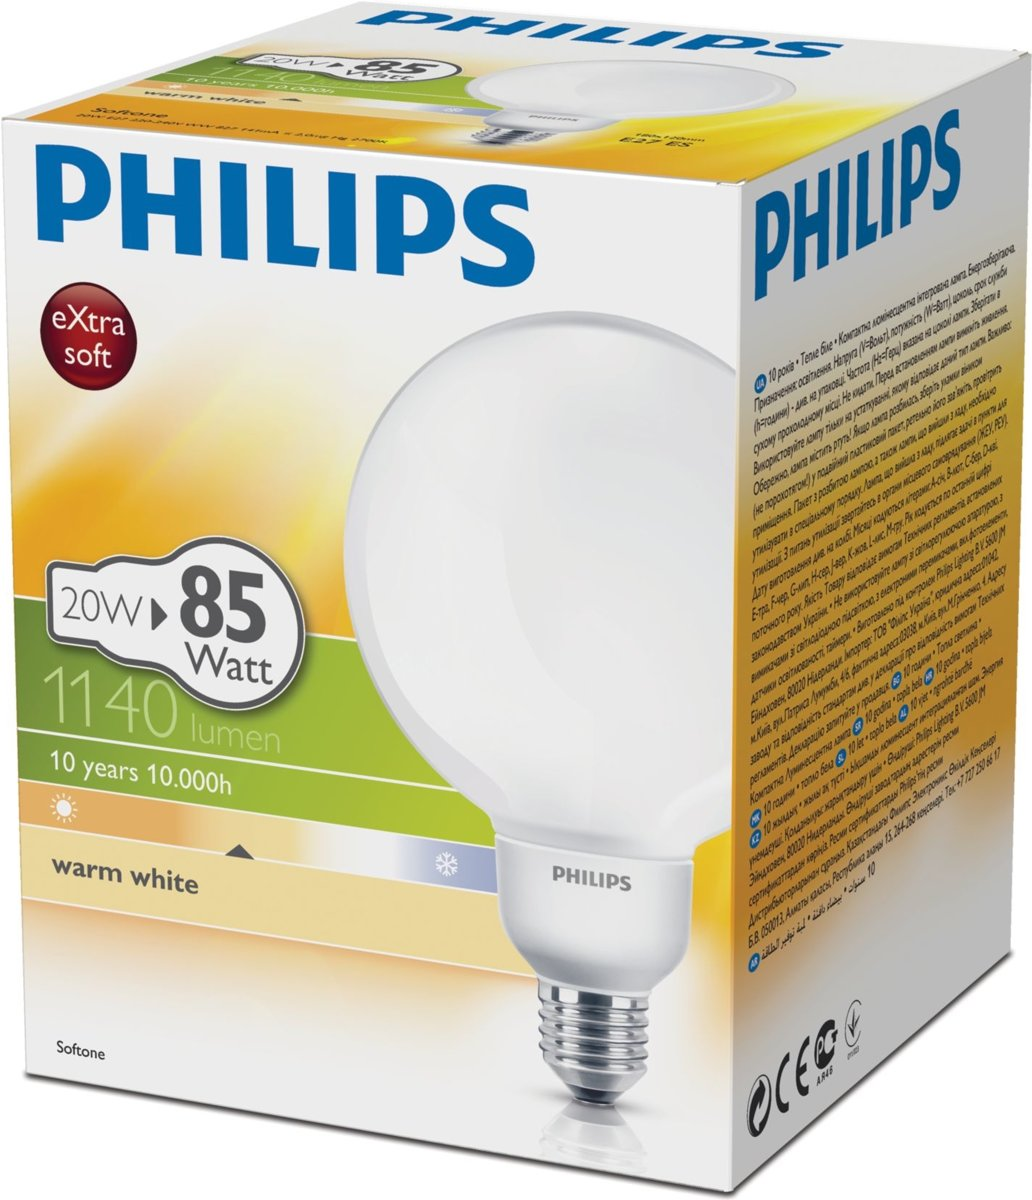 Philips Softone Flame Philips Softtone Spaarlamp Warm White 20w E27 2700k 1140lm